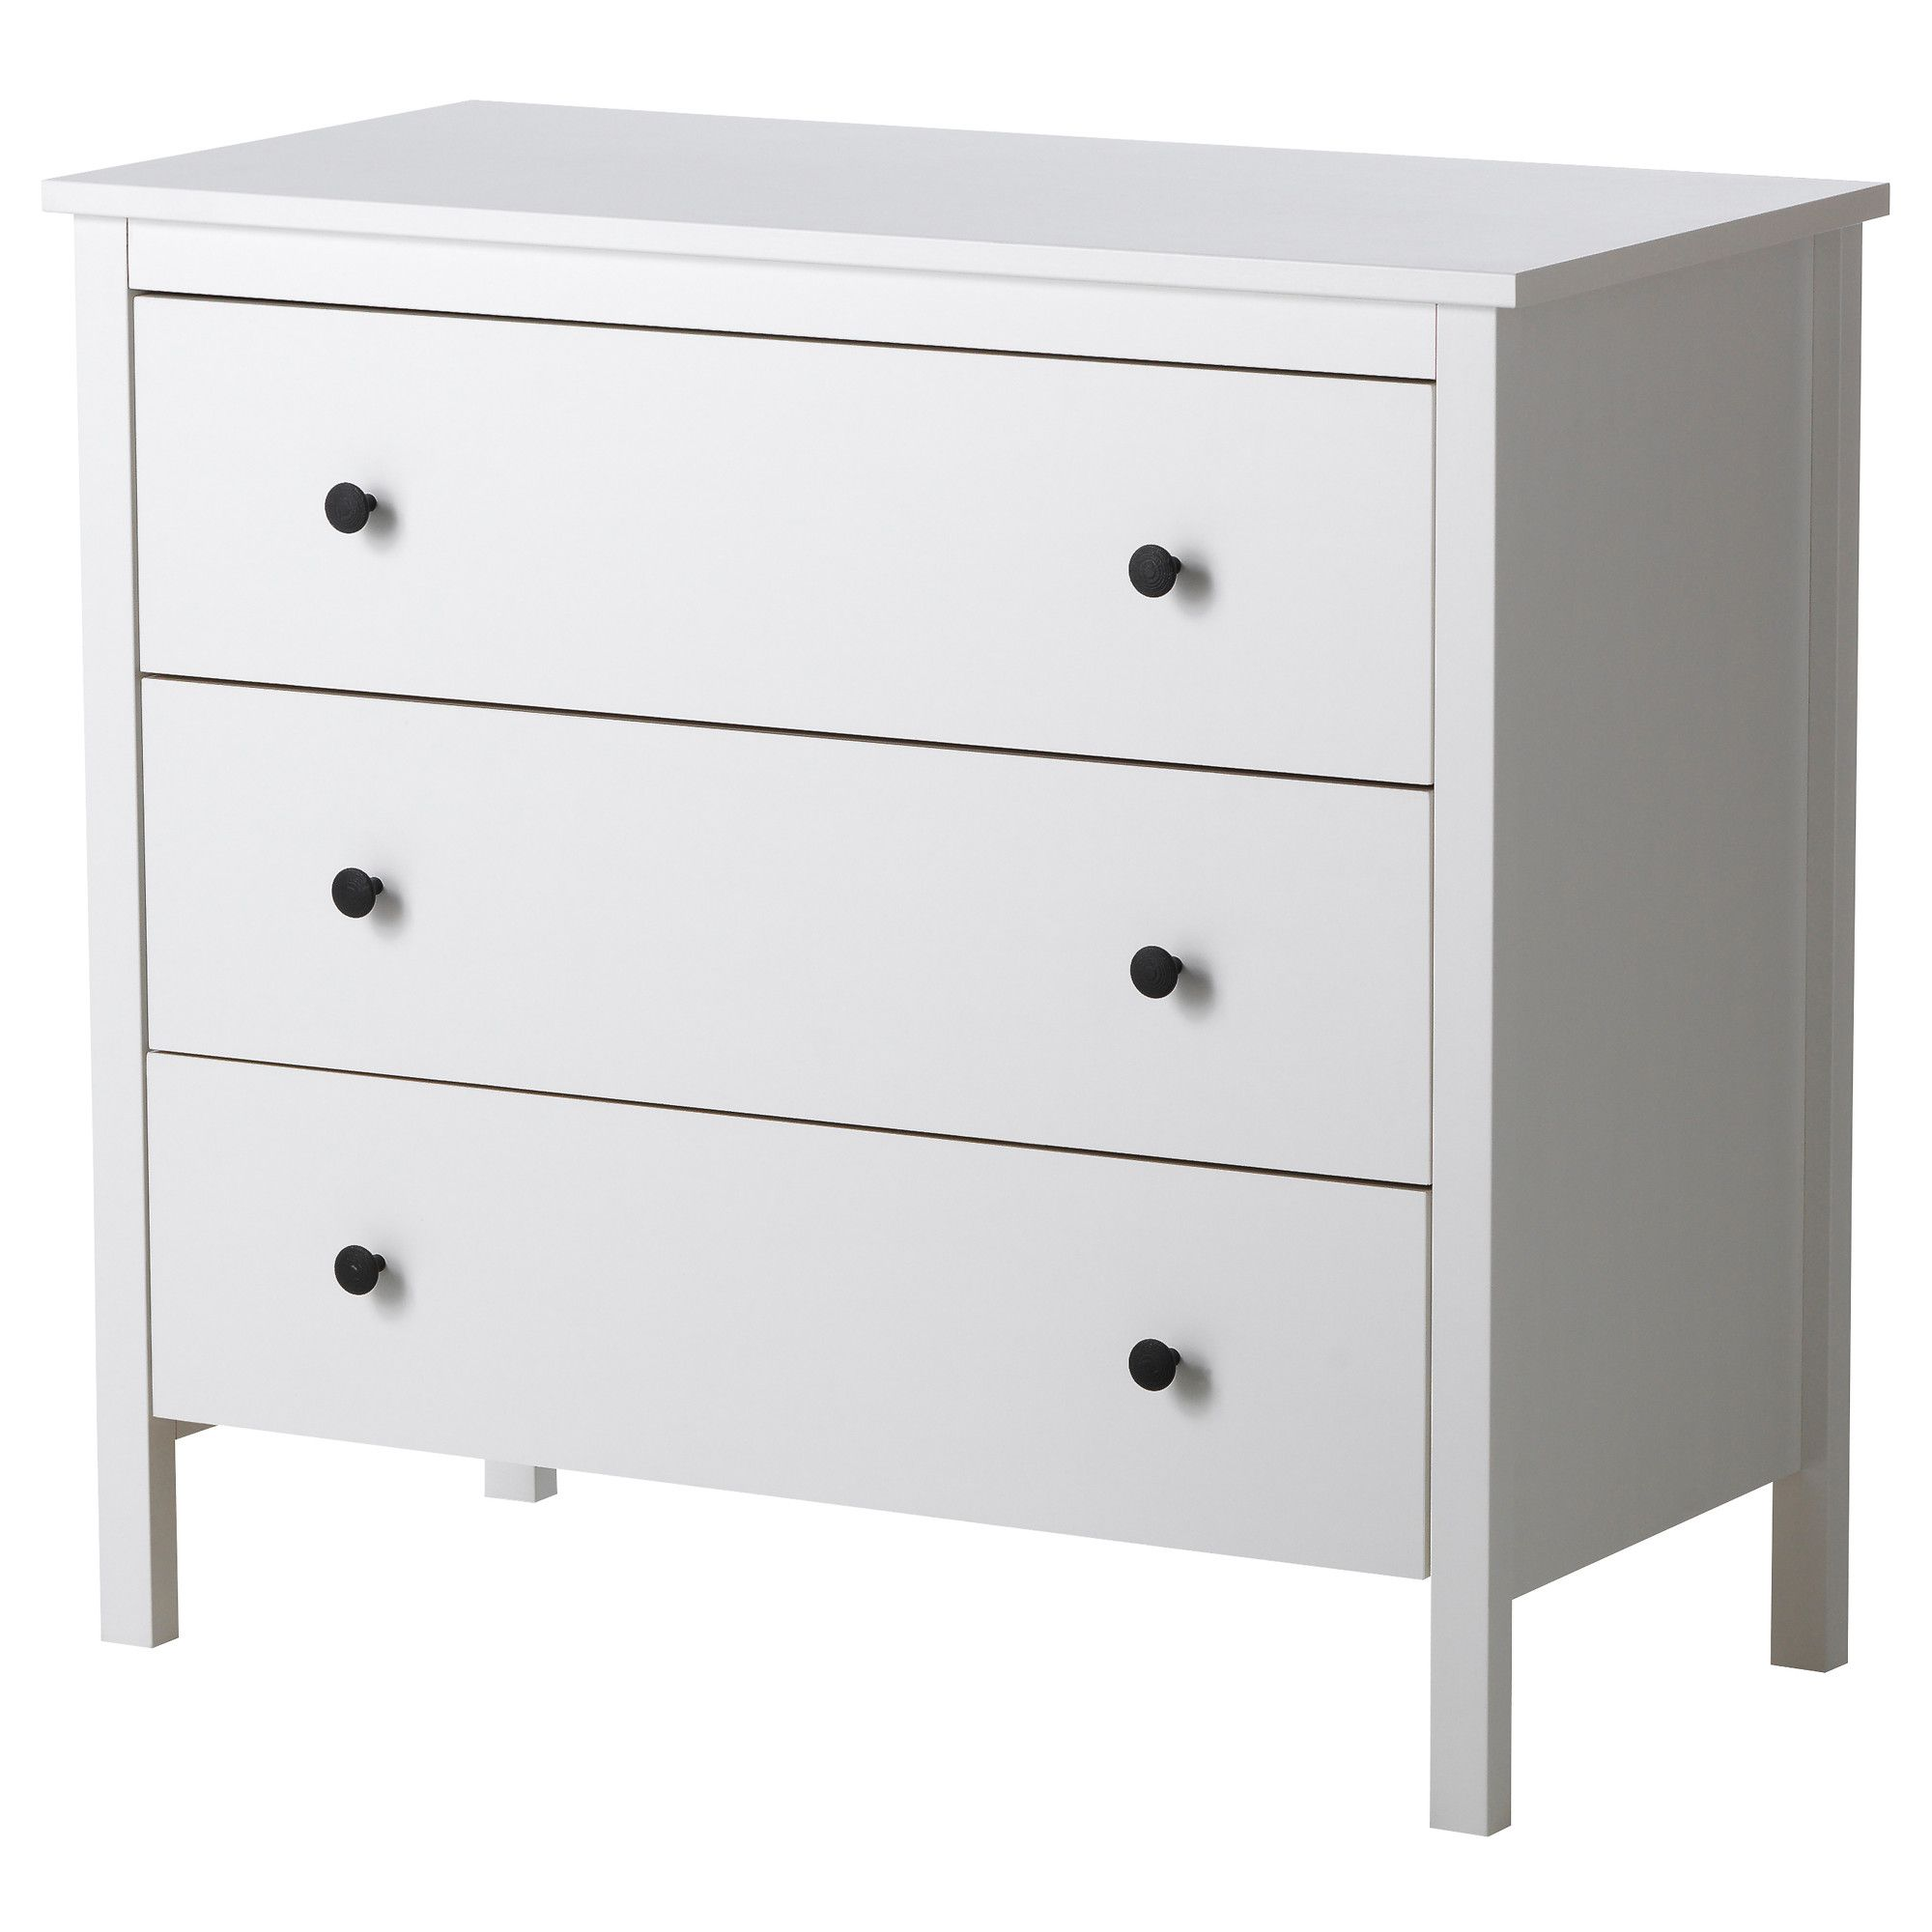 KOPPANG 3 Drawer Chest   modern   dressers chests and bedroom armoires    IKEA. KOPPANG 3 drawer chest   IKEA Project twins nursery       Baby